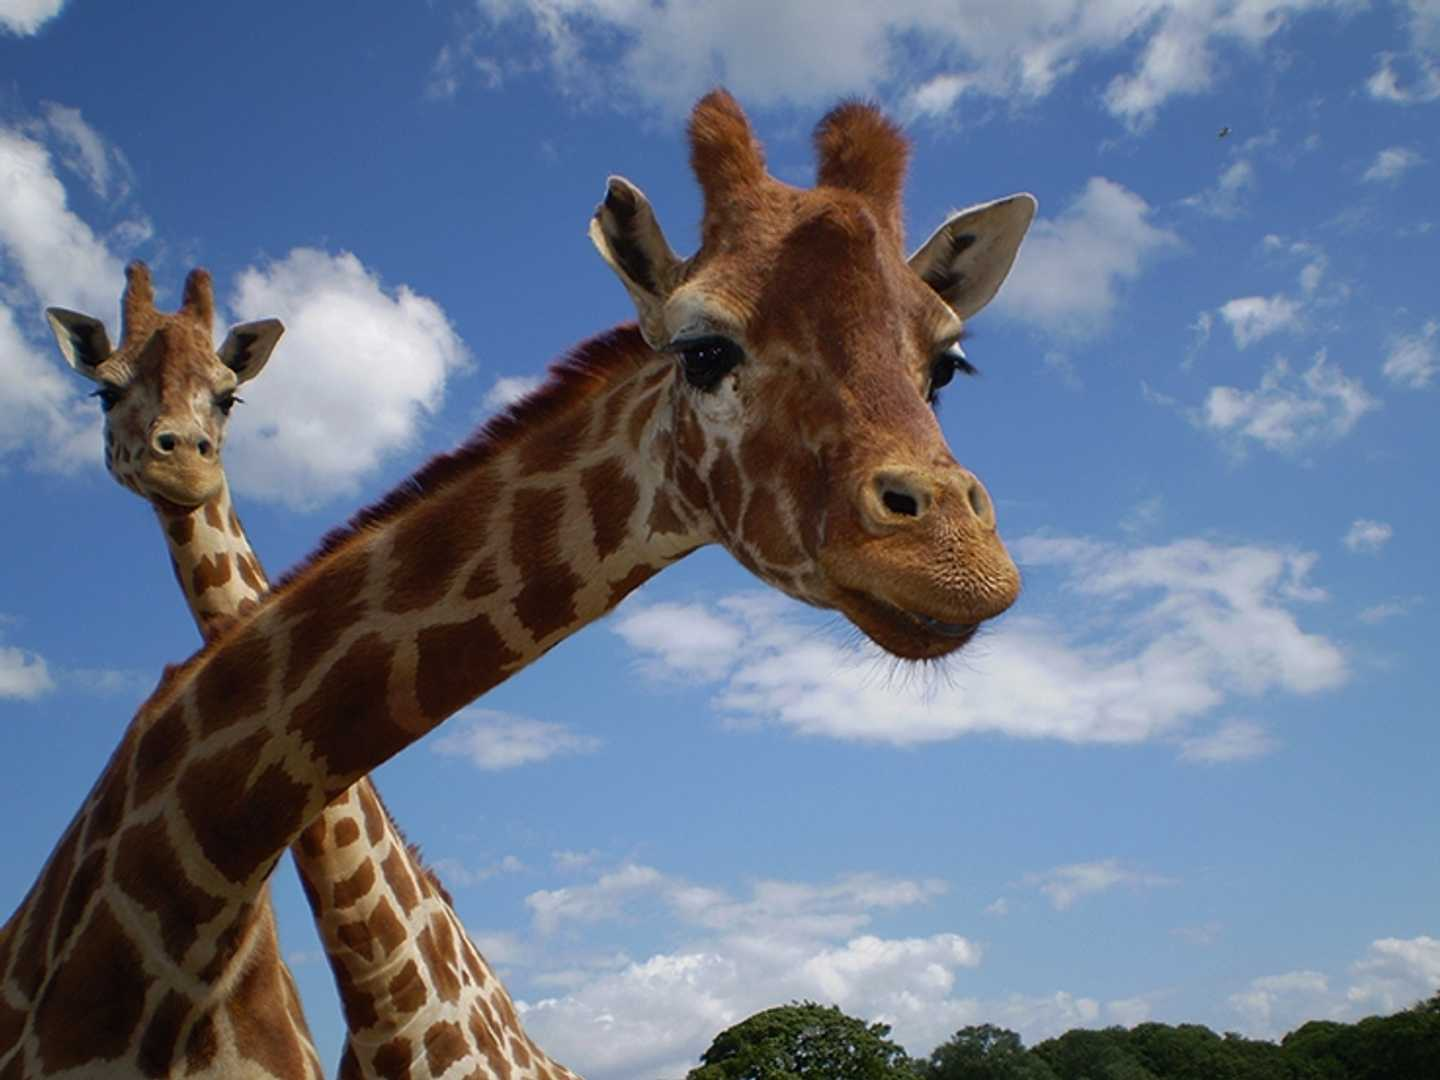 Two giraffes with sky background